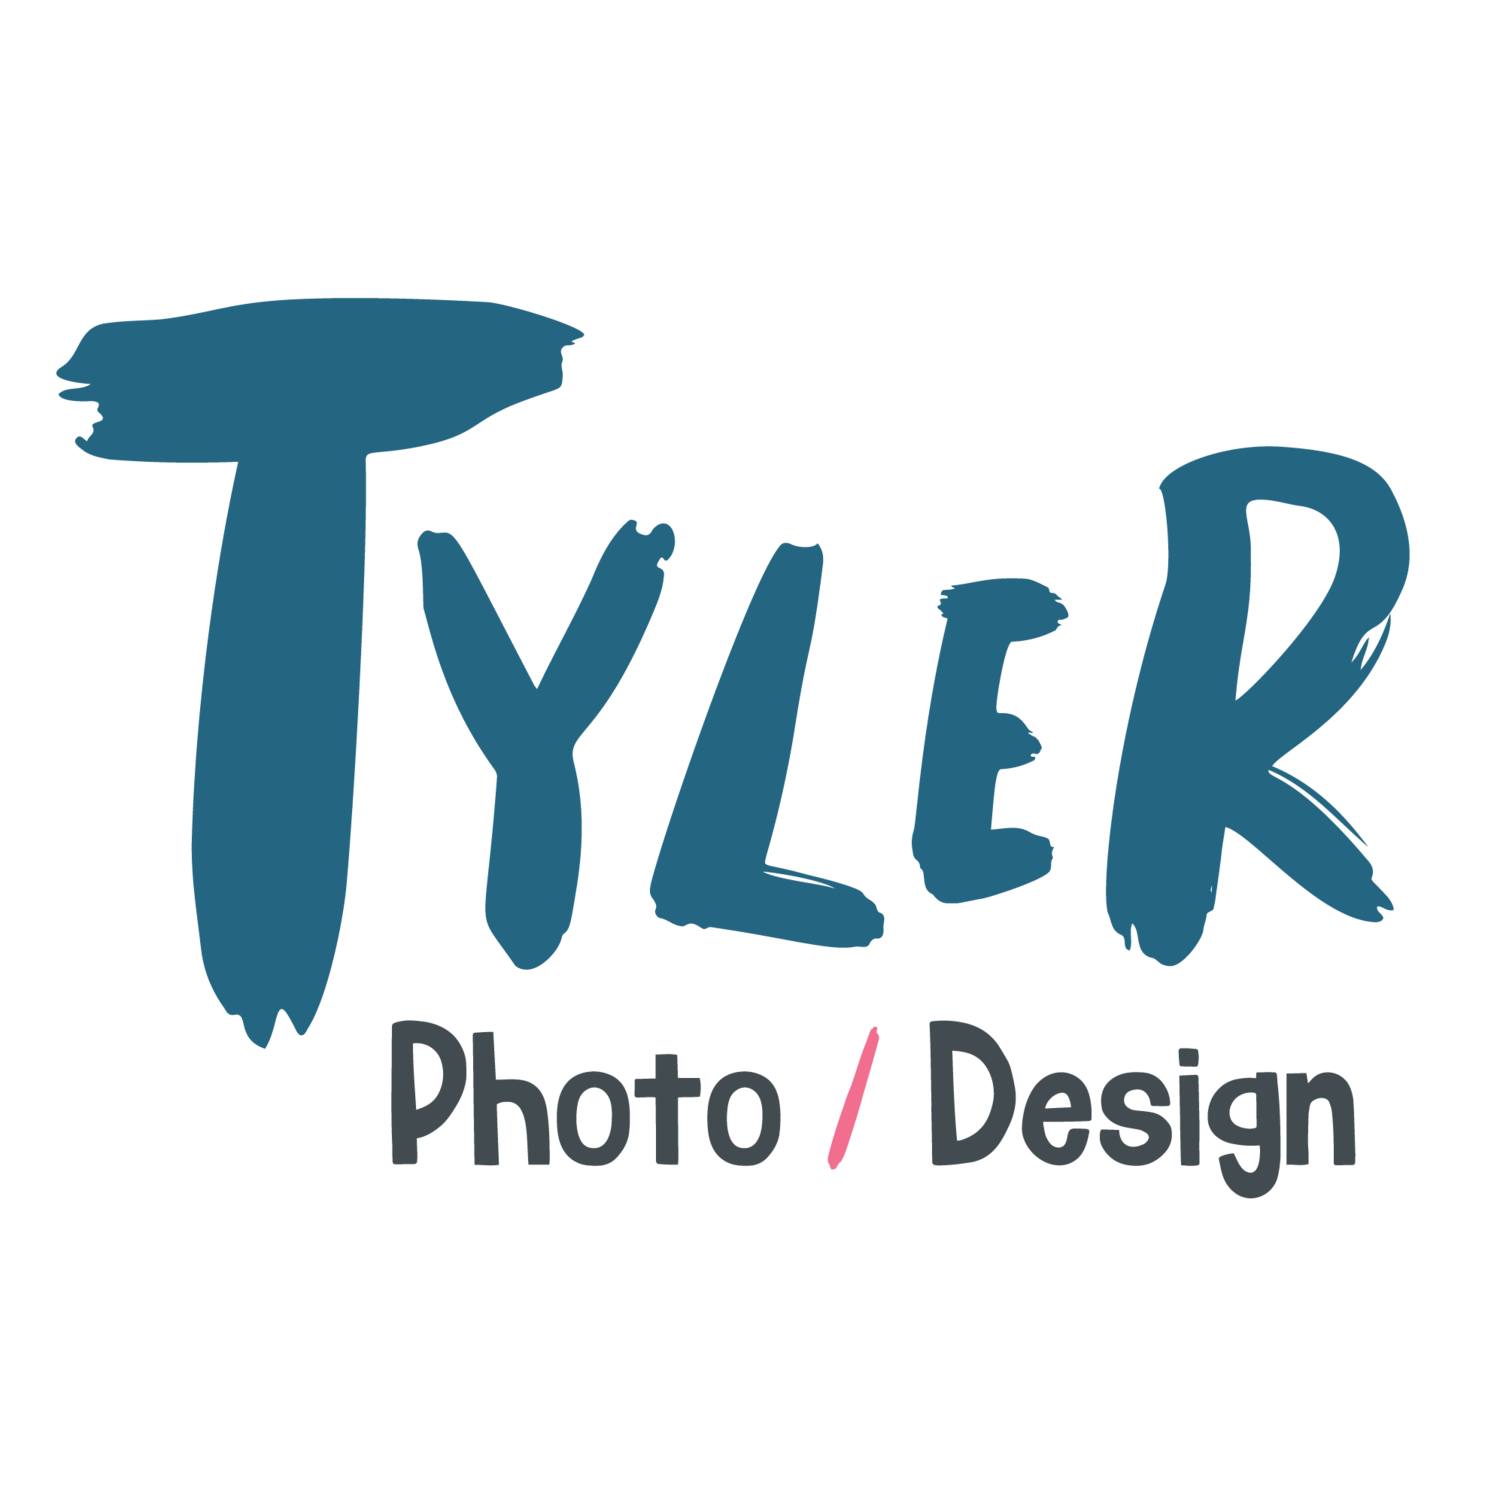 Tyler Photo / Design